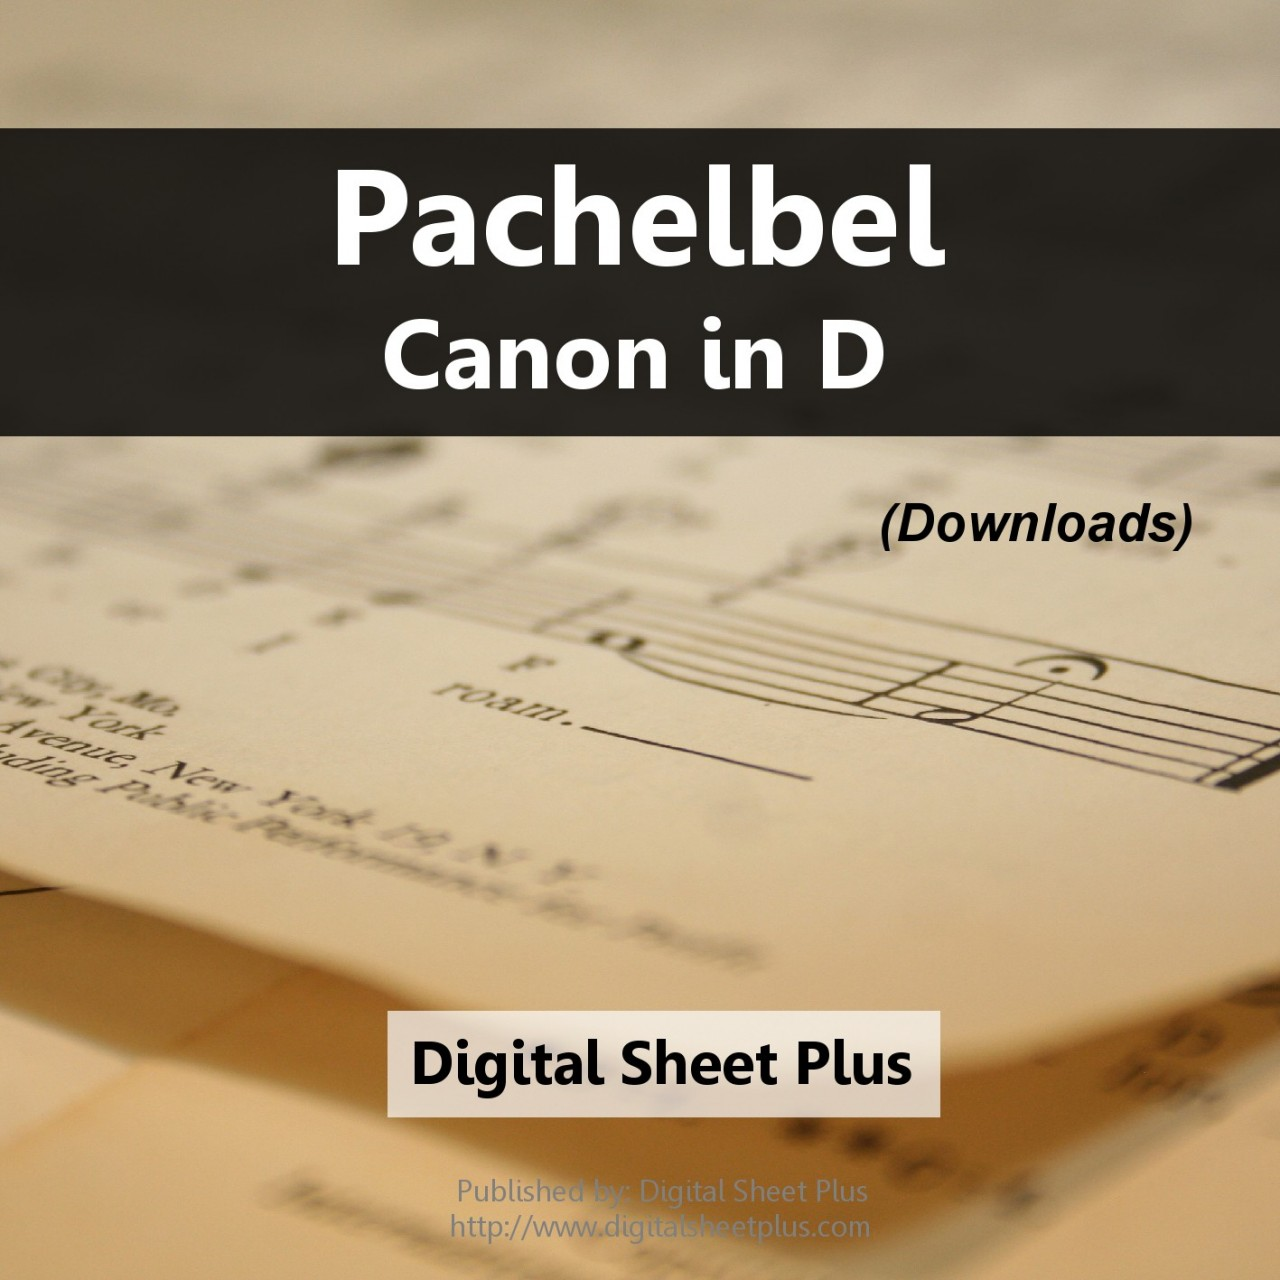 Buy Pachelbel Canon In D Sheet Music Downloads From